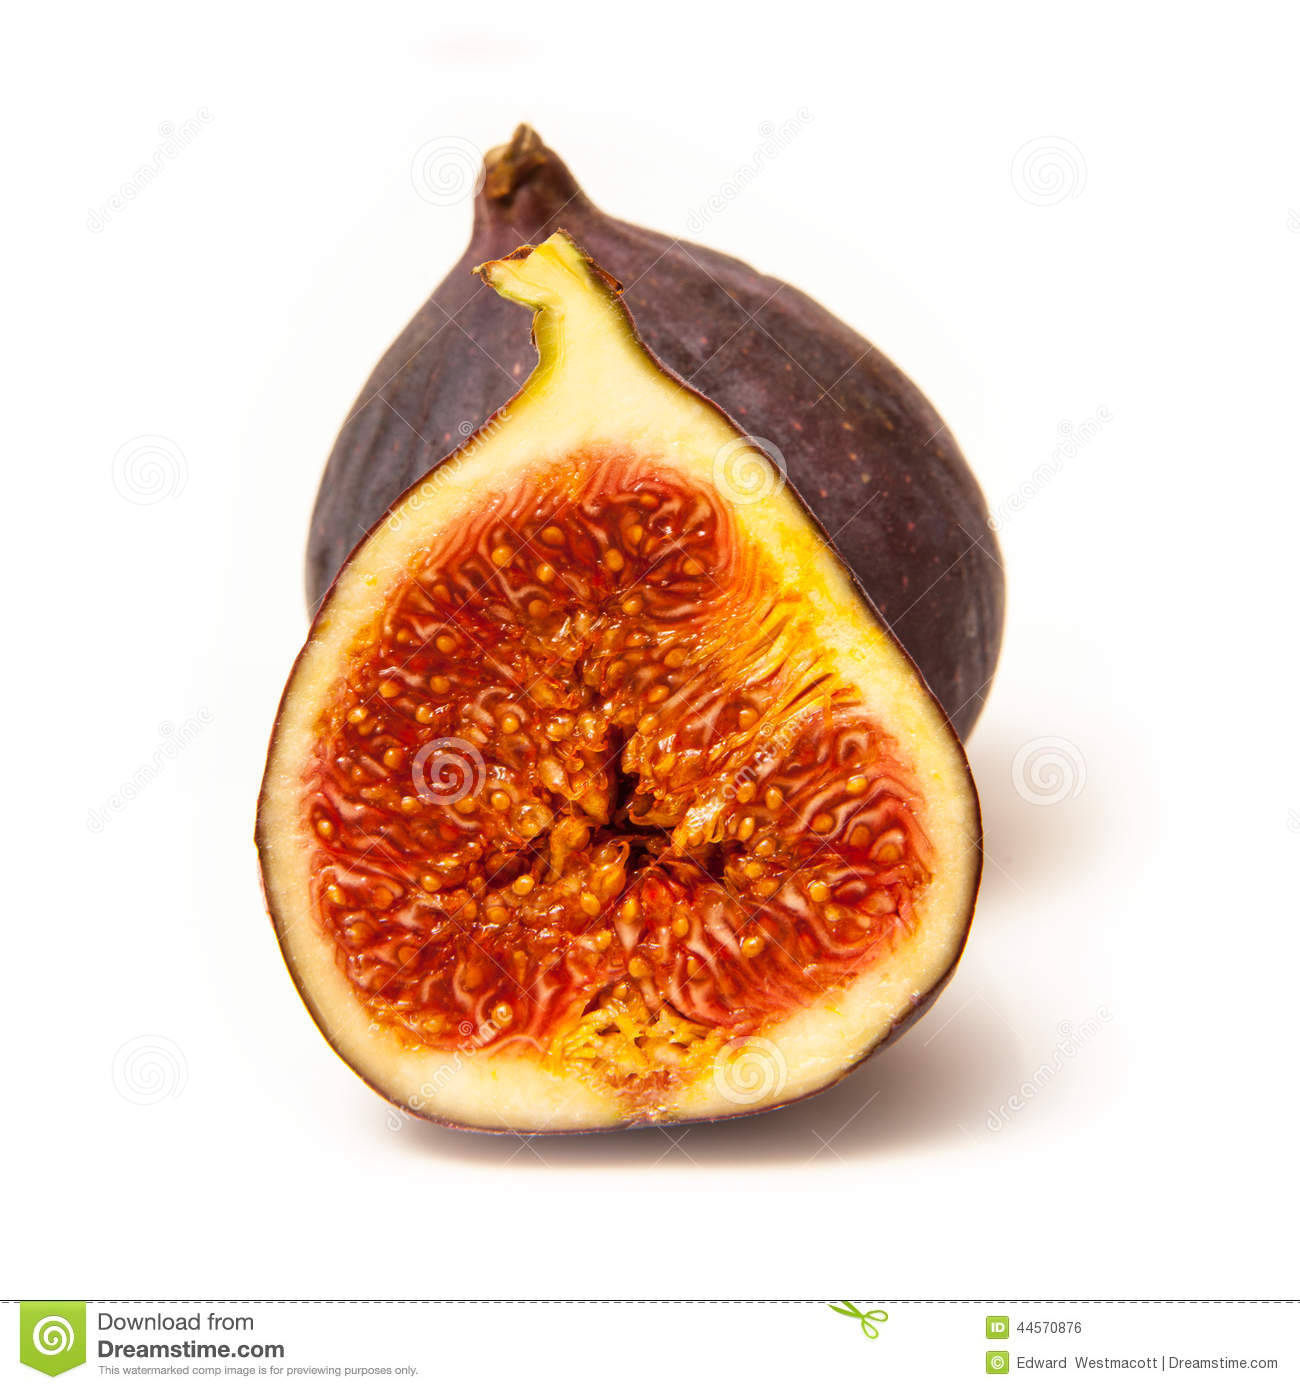 figs isolated on a white studio background.